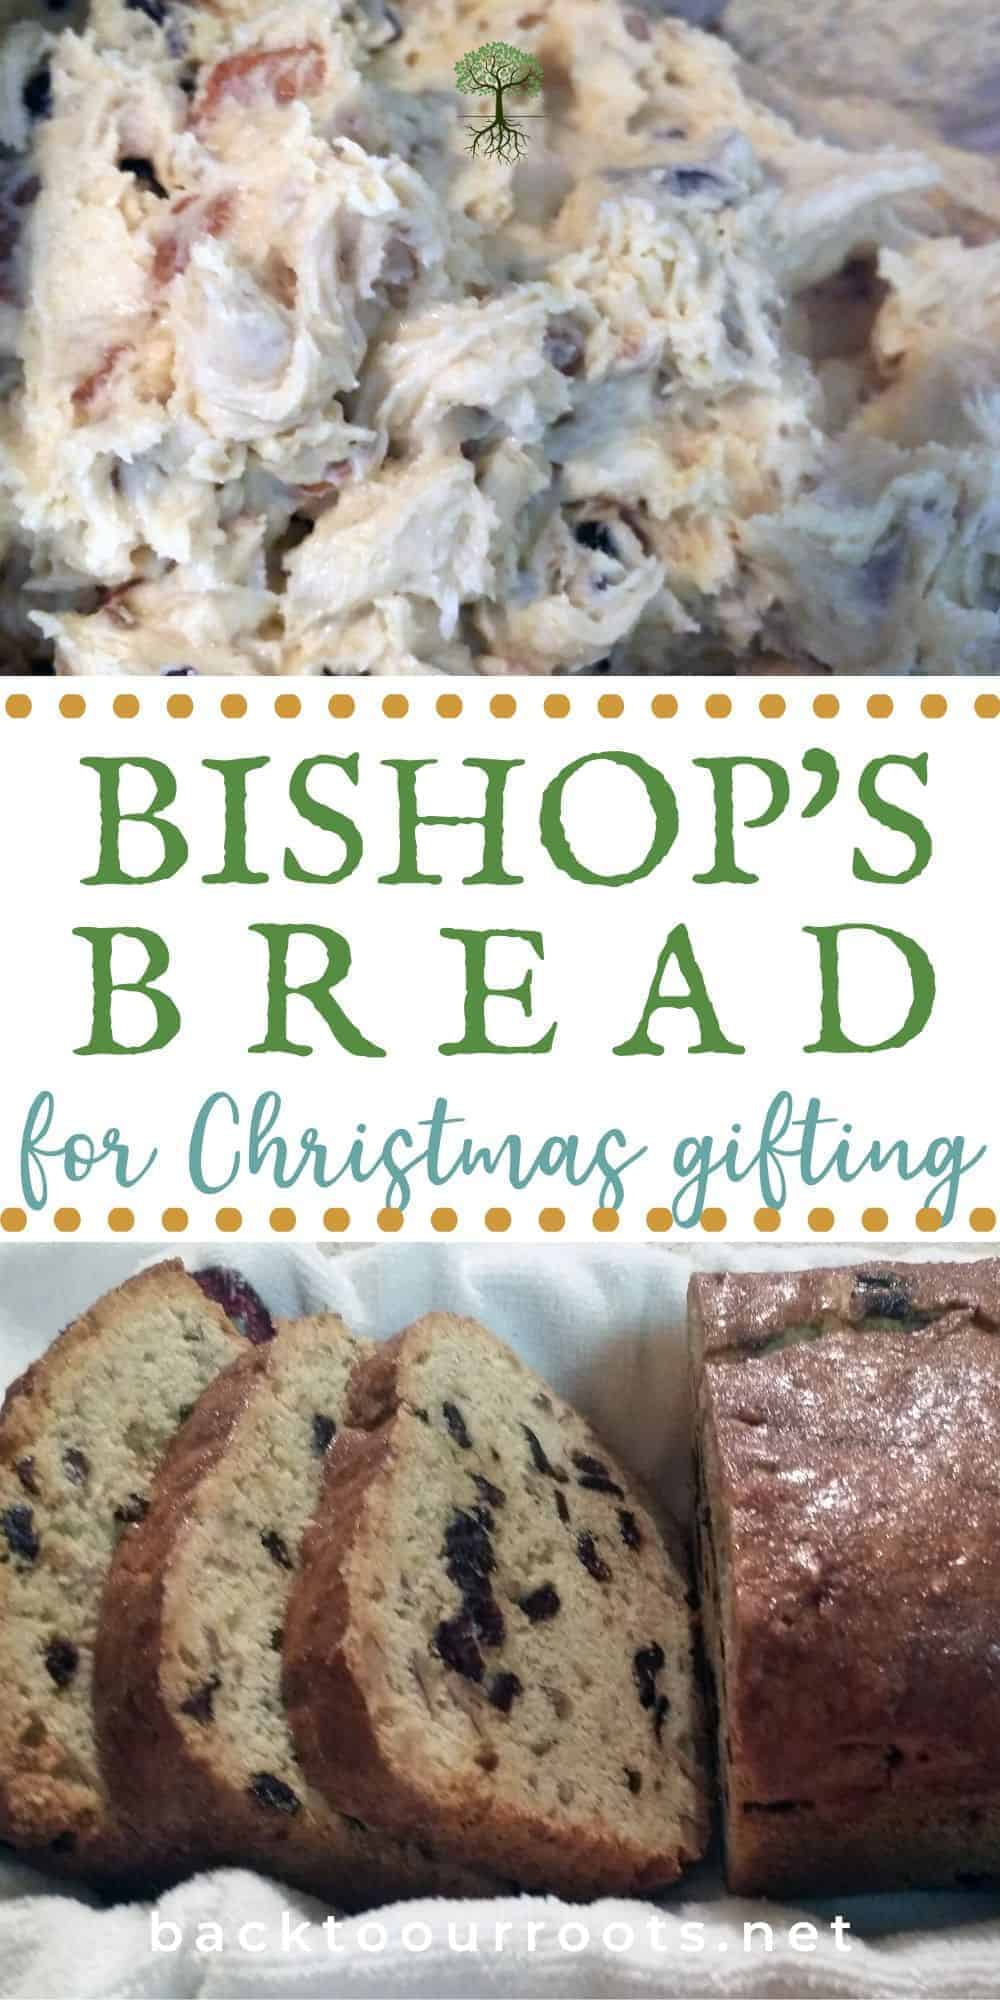 Cherry Pecan Bishop's Bread